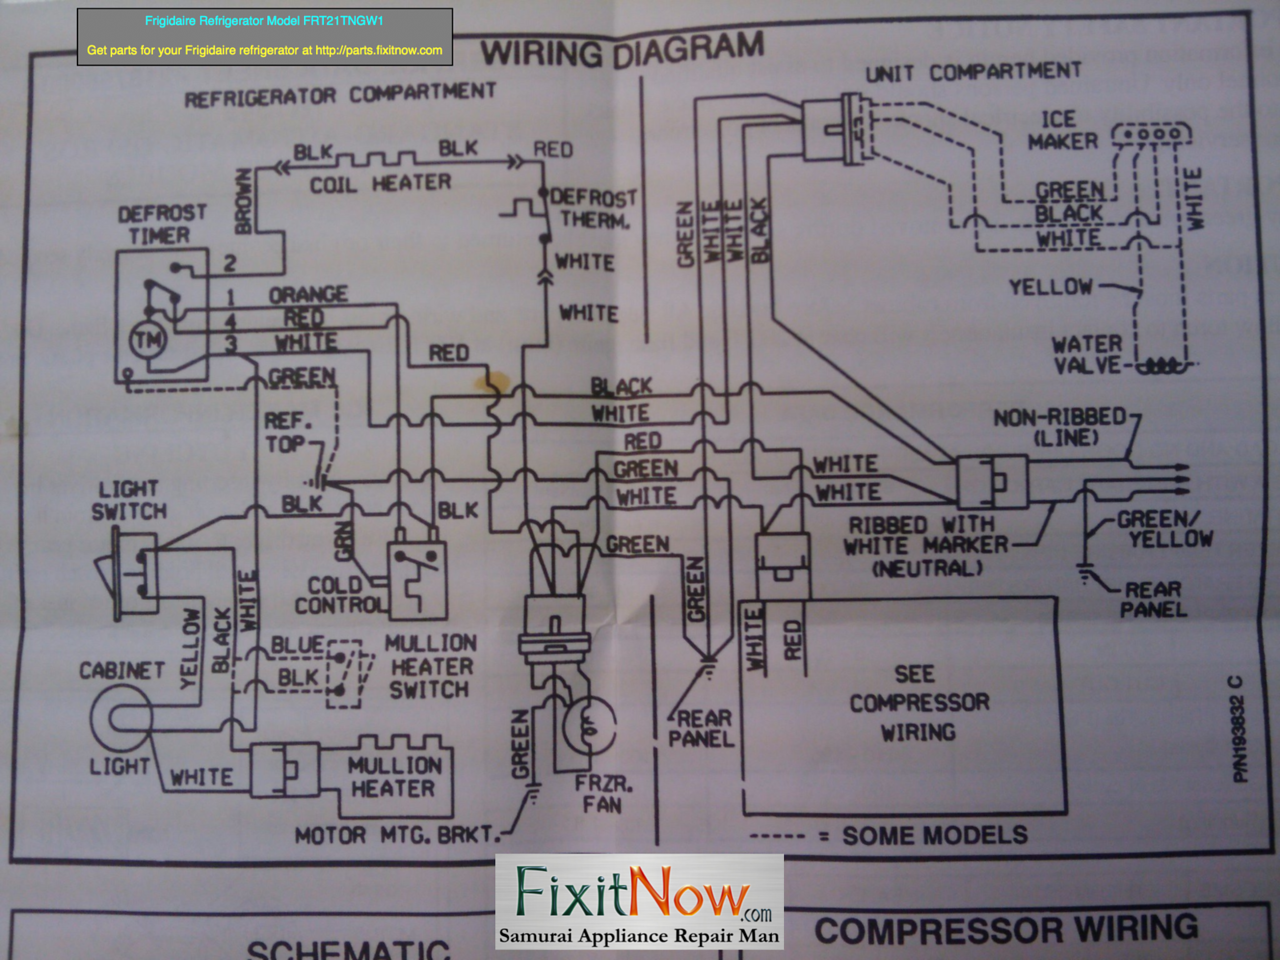 4927632513_66c123c922_o X2 wiring diagrams and schematics appliantology fridge compressors wiring diagram at bakdesigns.co